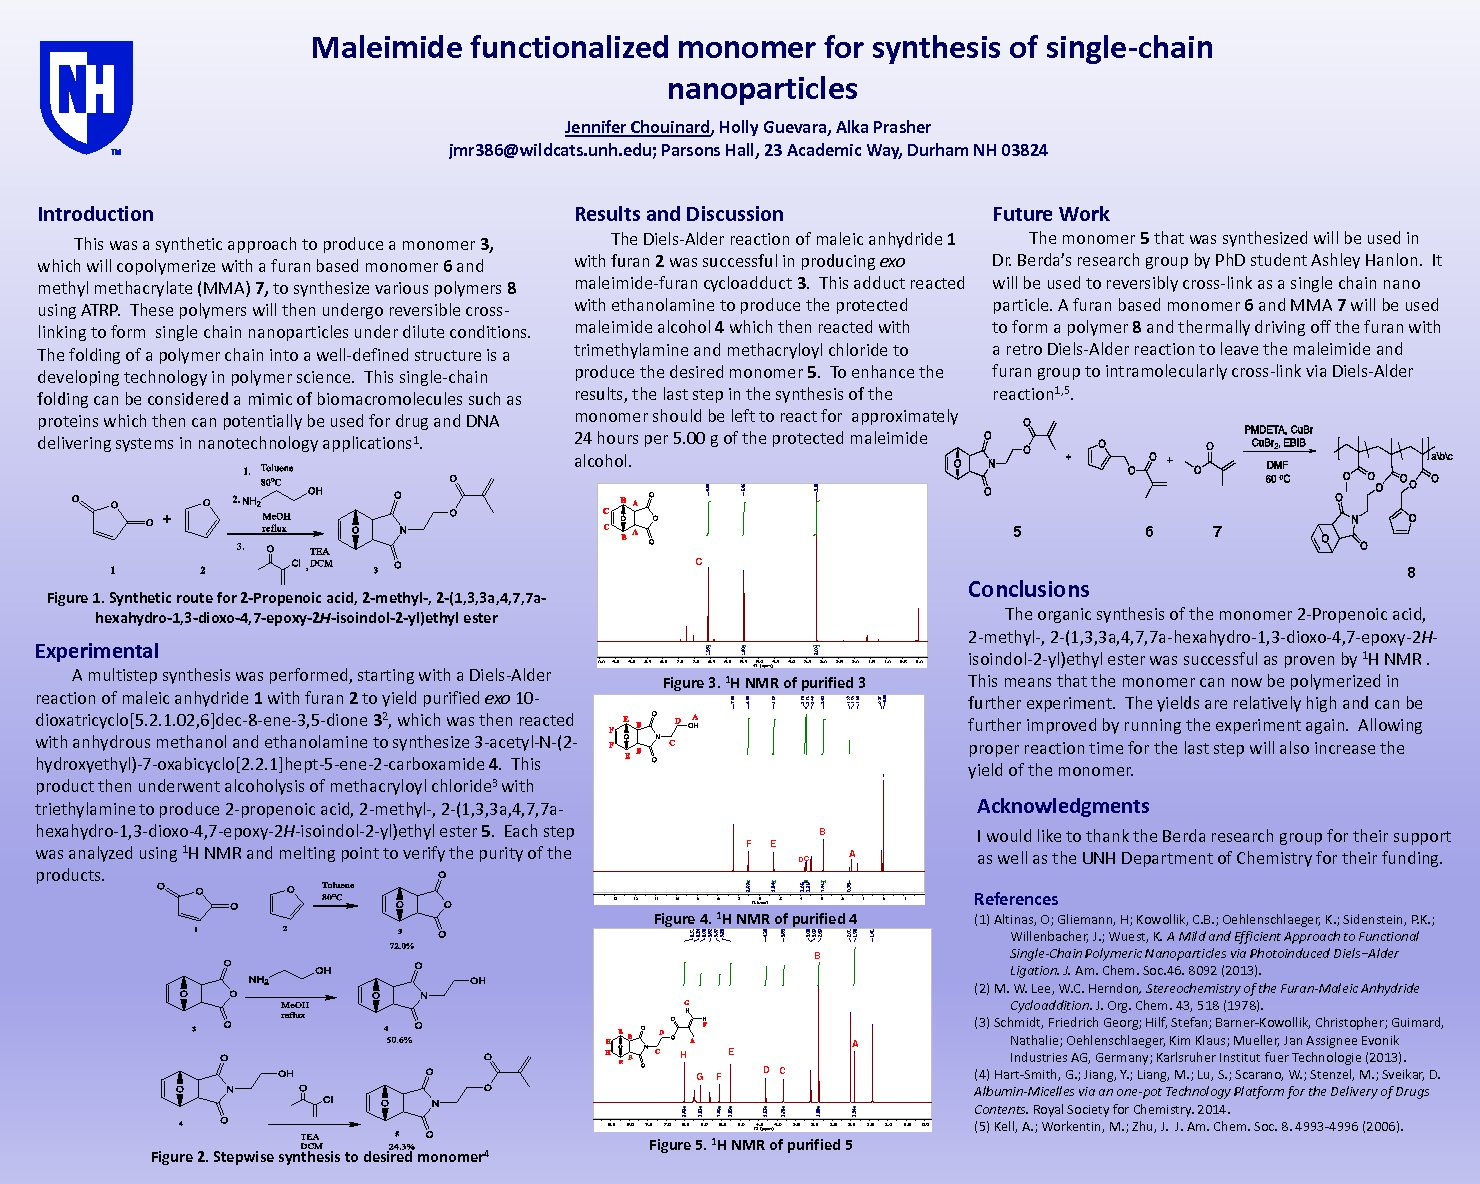 Maleimide Functionalized Monomer For Synthesis Of Single-Chain Nanoparticles by jmr386